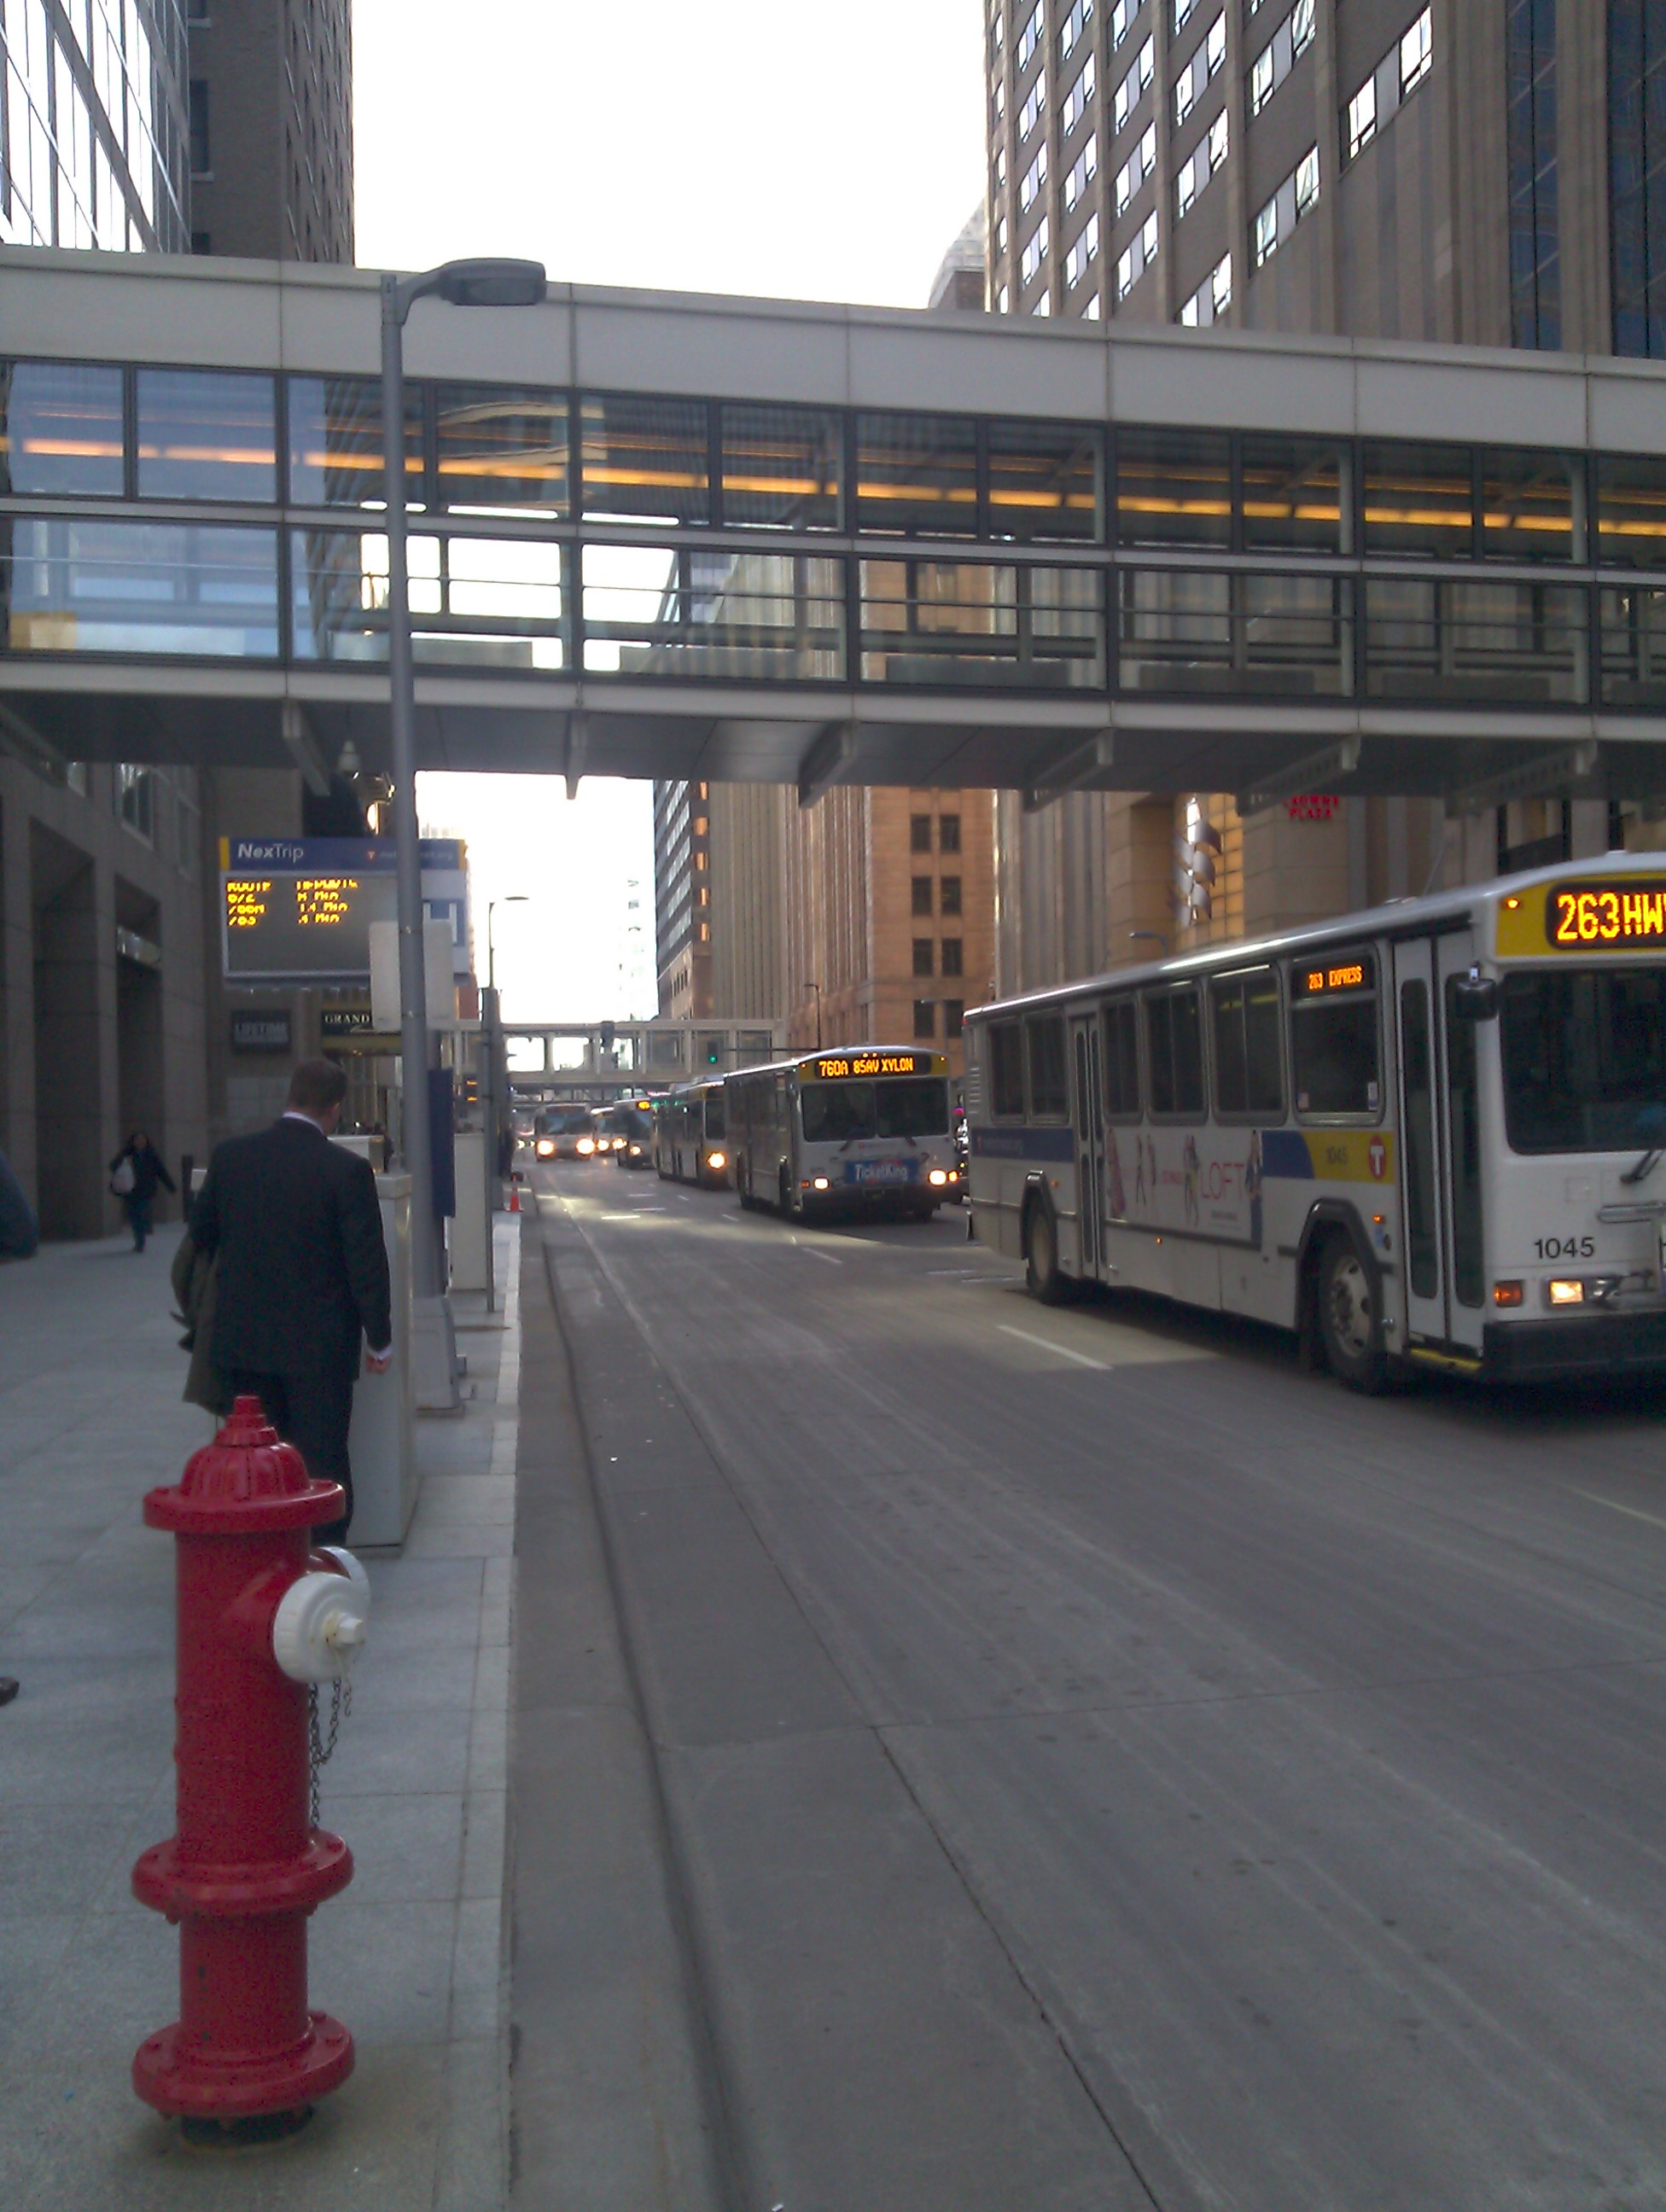 Express bus traffic on 2 Ave South